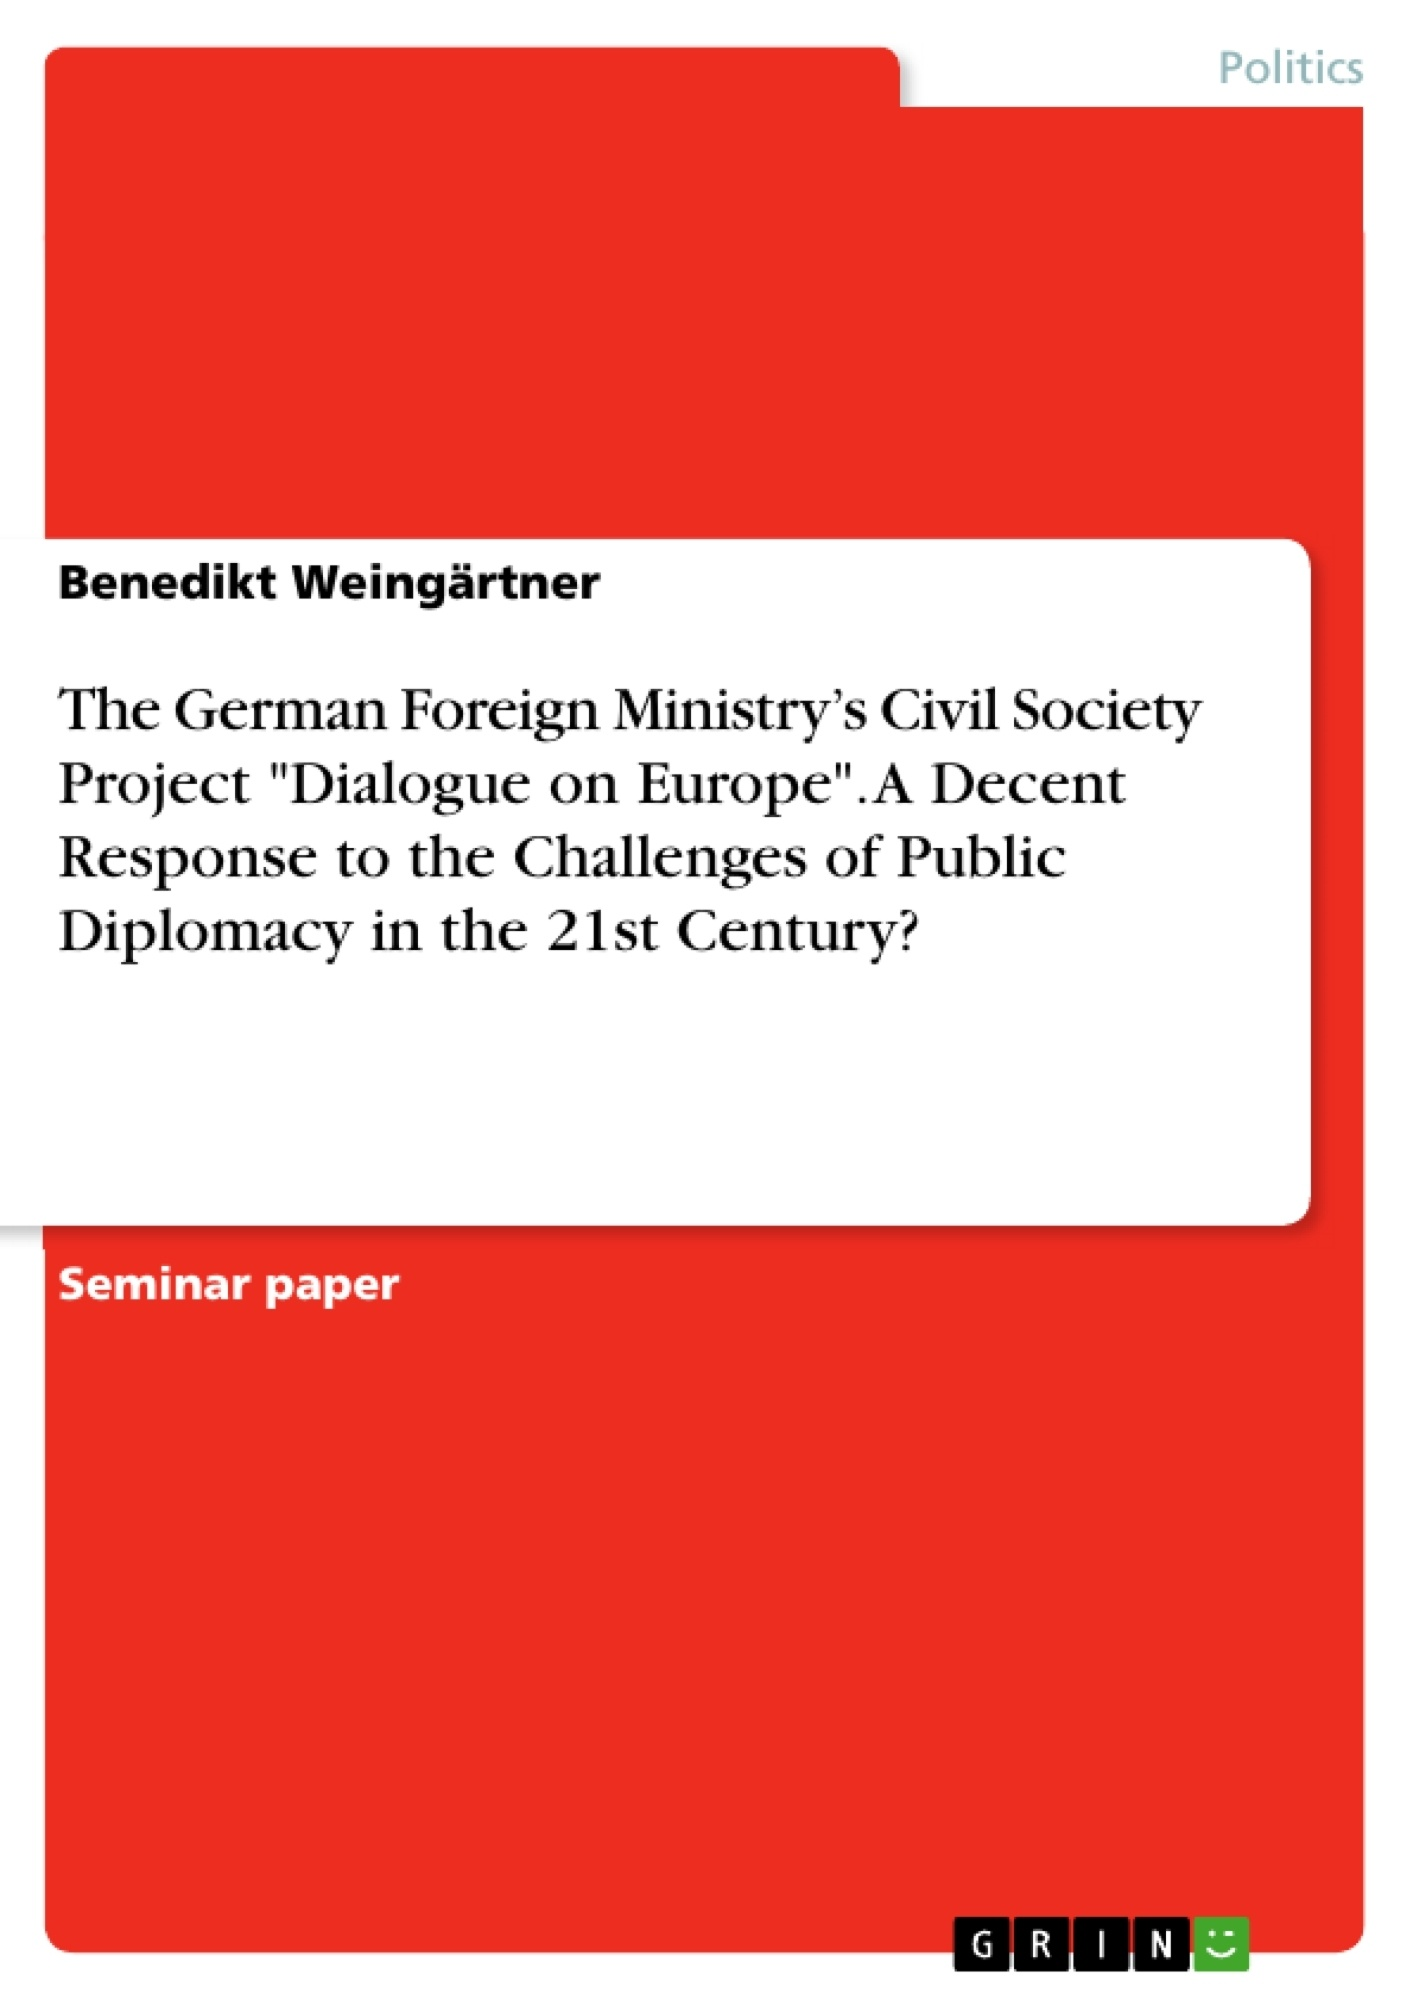 """Title: The German Foreign Ministry's Civil Society Project """"Dialogue on Europe"""". A Decent Response to the Challenges of Public Diplomacy in the 21st Century?"""